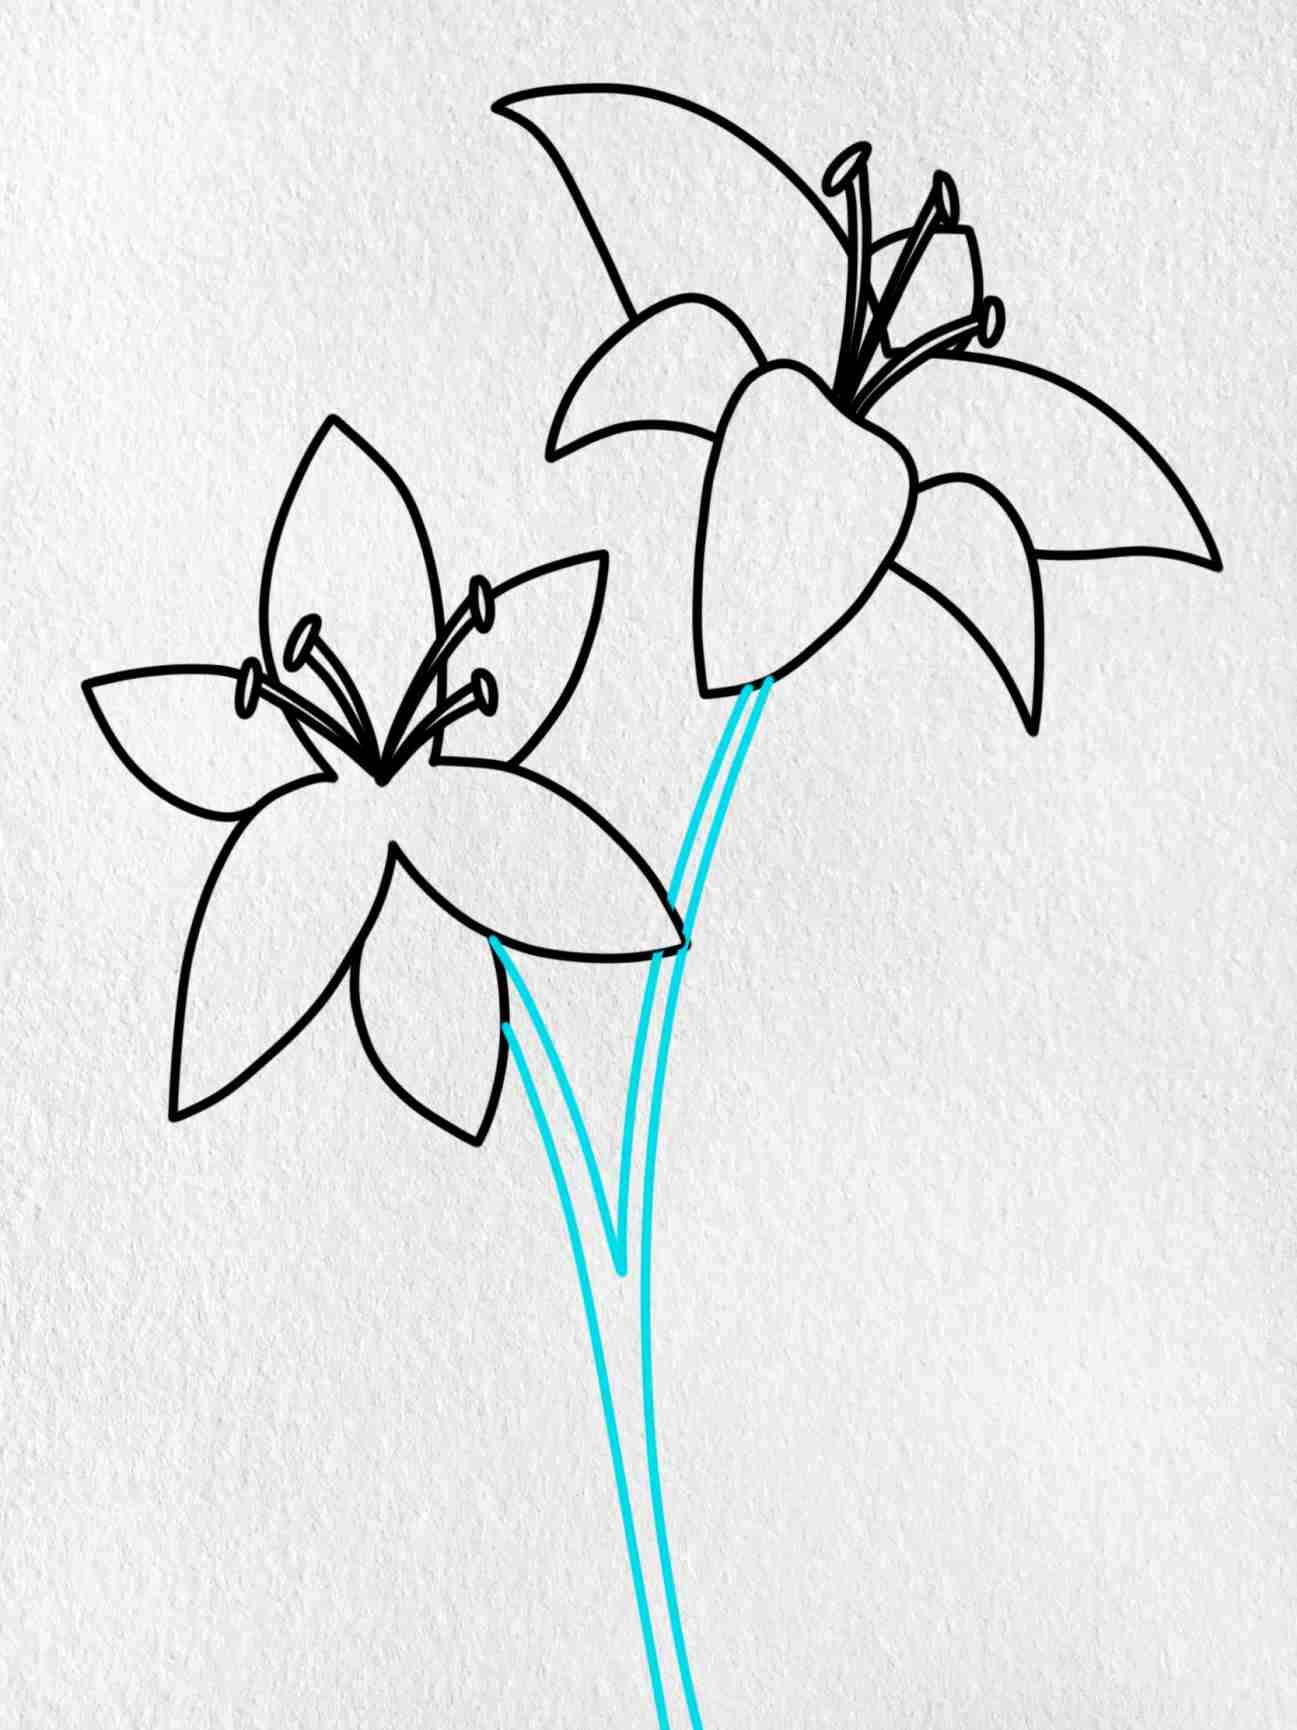 How To Draw A Lily: Step 7